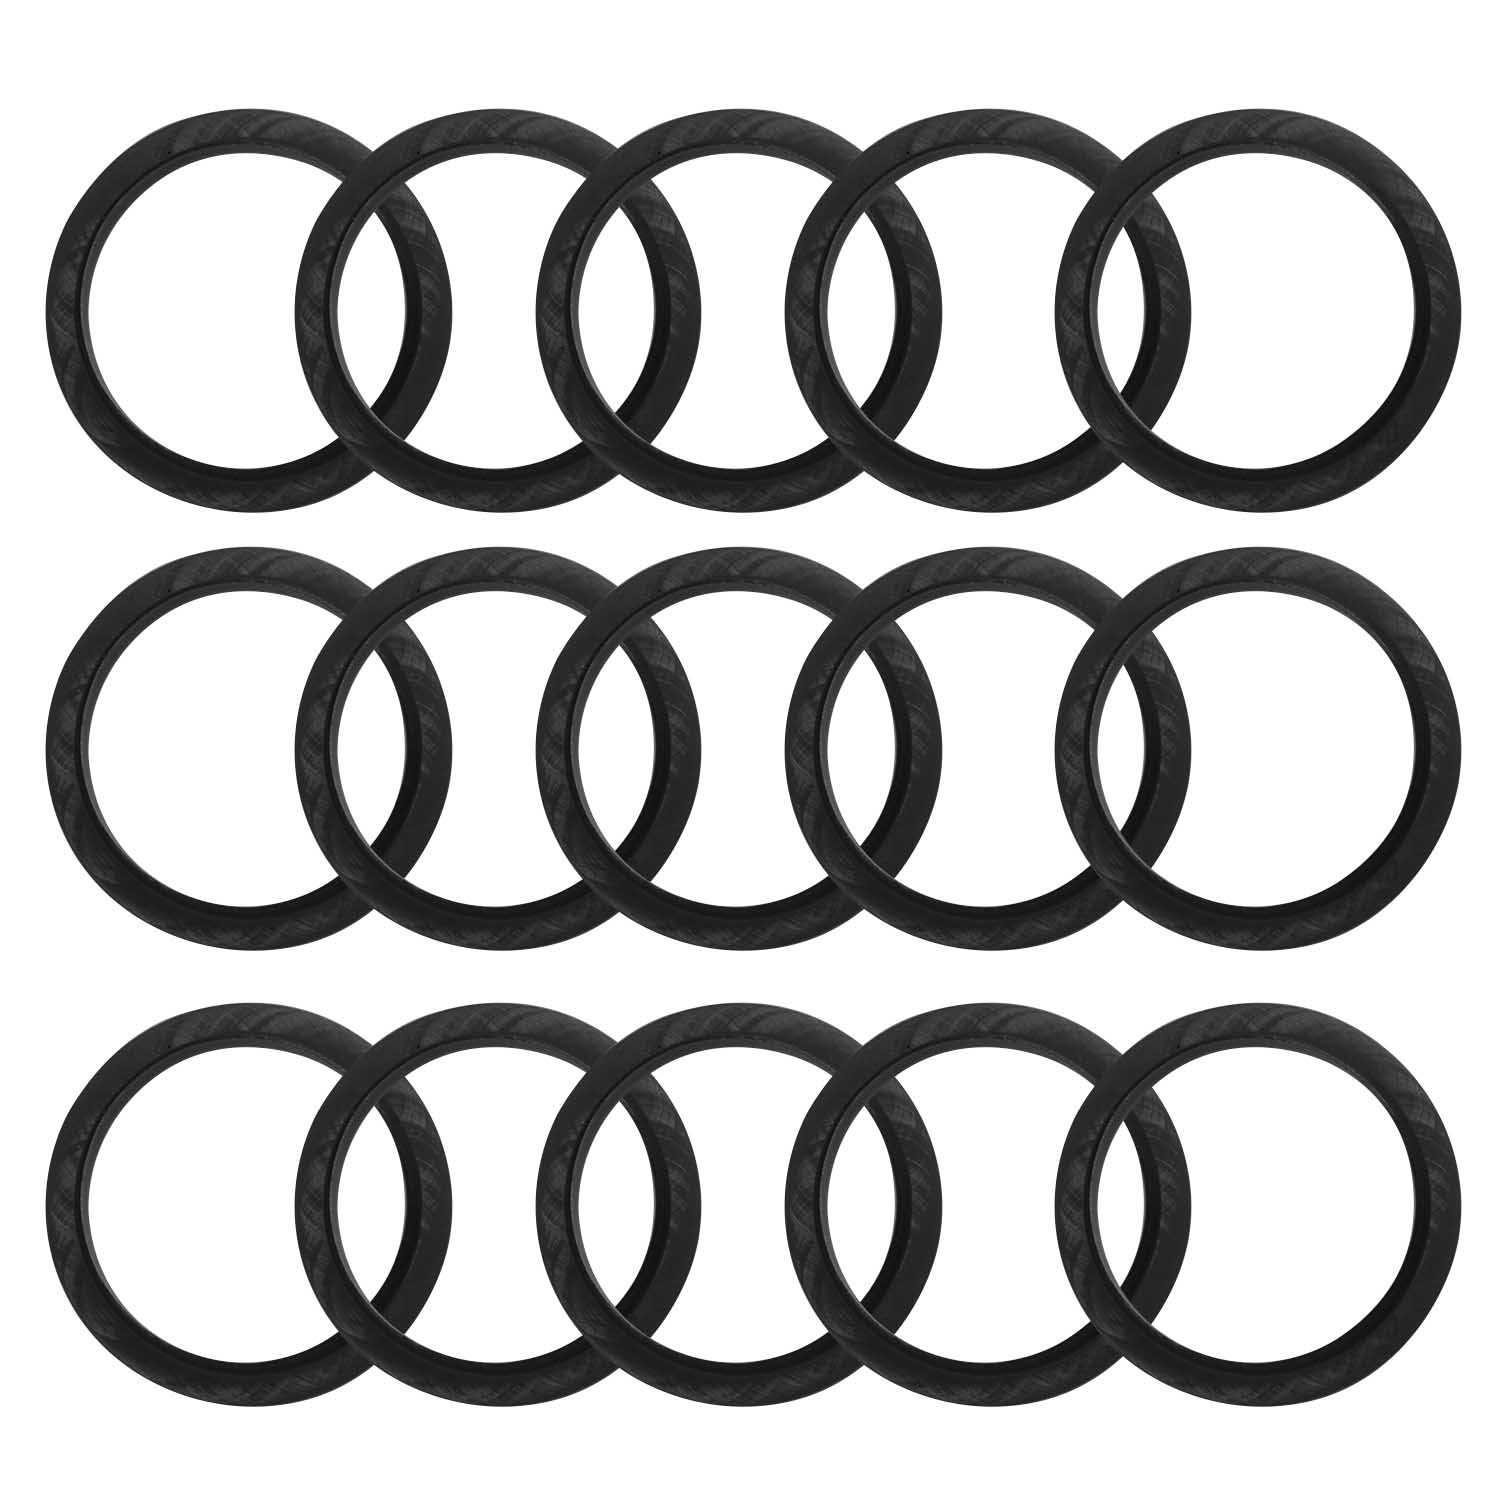 Behogar 50pcs 20mm Replacement Silicone Rubber Seal Ring For Nespresso Machine Stainless Steel Refillable Coffee Capsules Pods